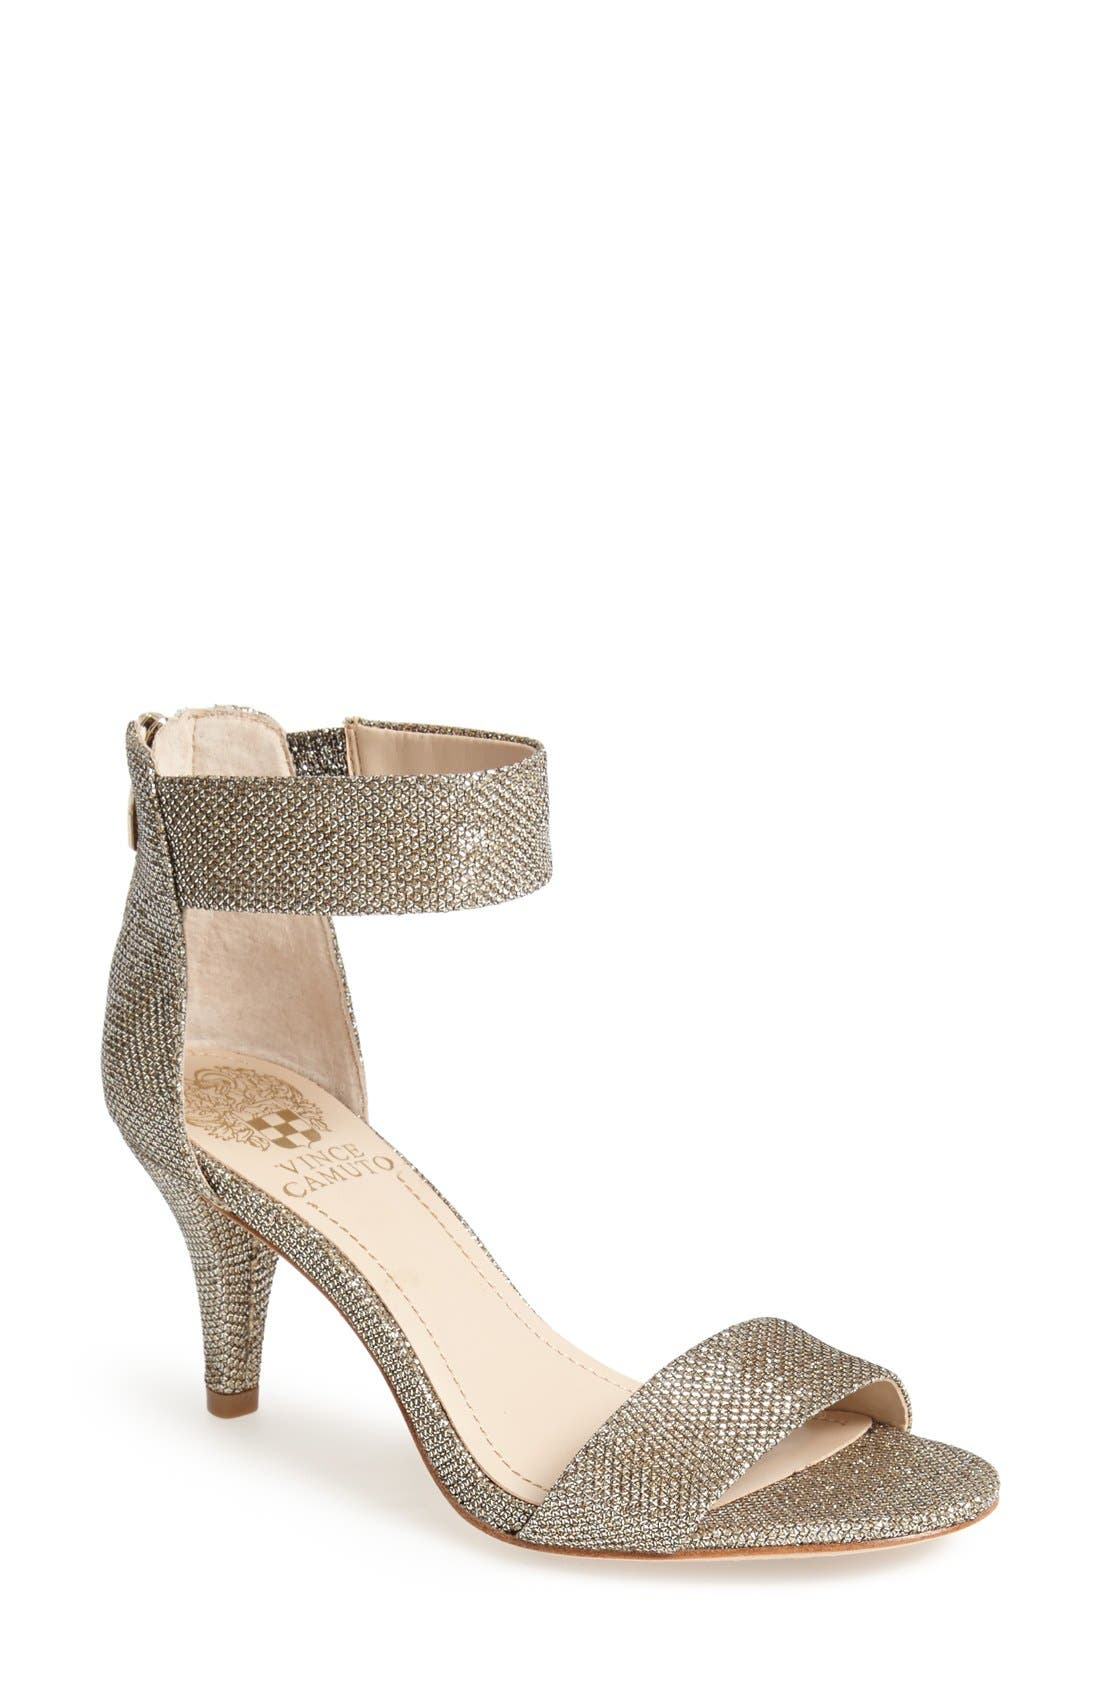 Main Image - Vince Camuto 'Marleen' Sandal (Nordstrom Exclusive)